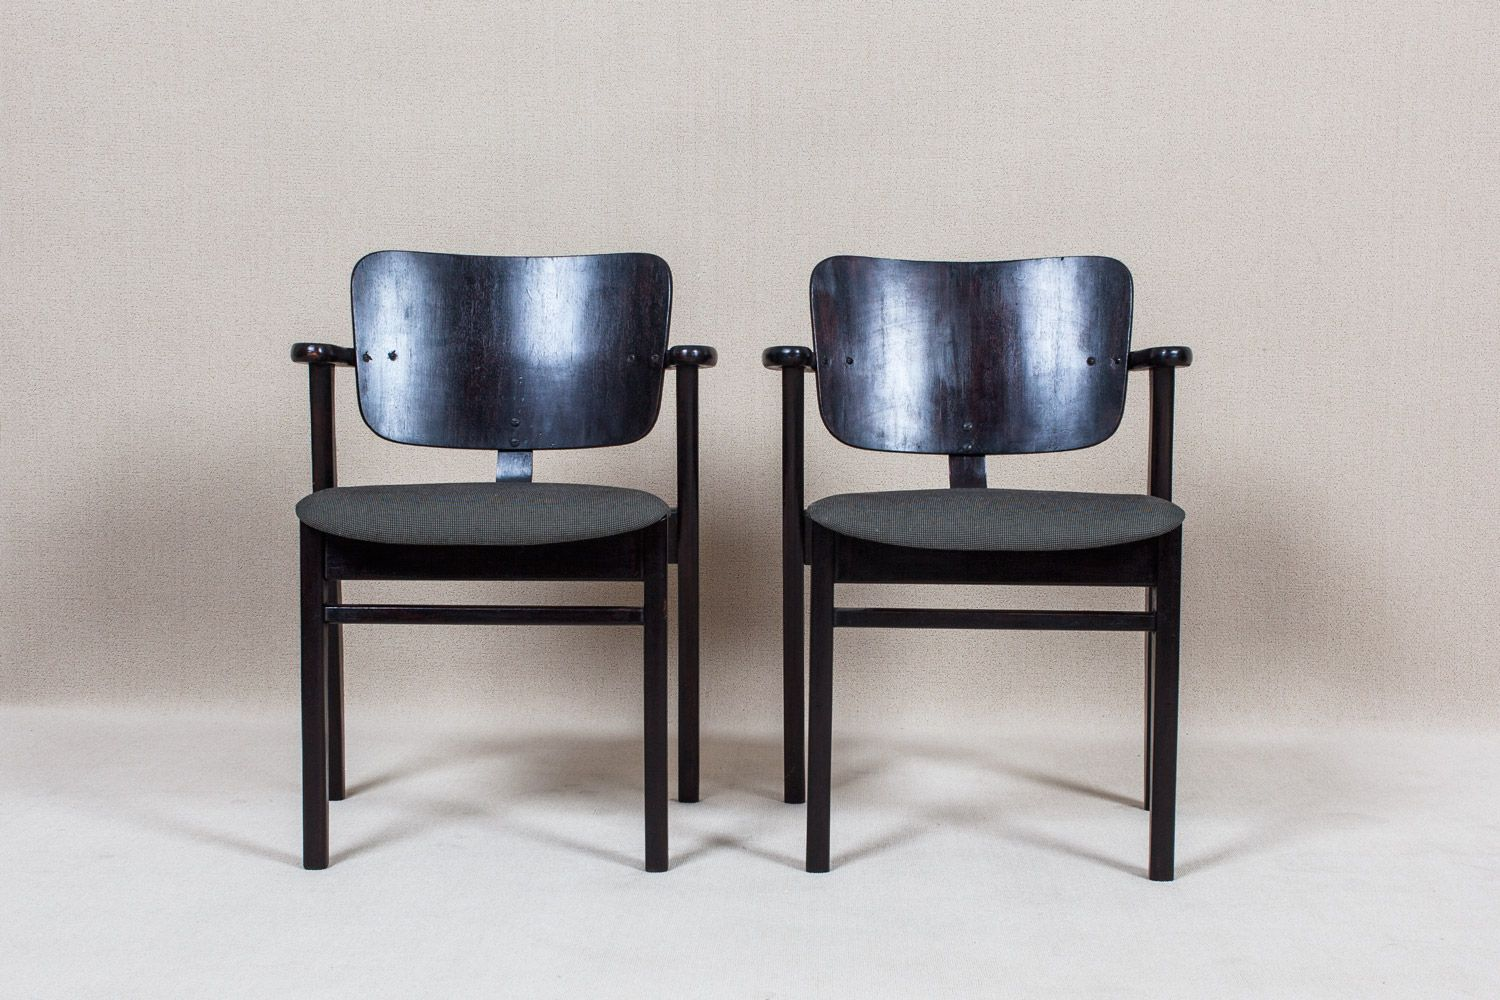 domus chair by ilmari tapiovaara for artek for sale at pamono. Black Bedroom Furniture Sets. Home Design Ideas